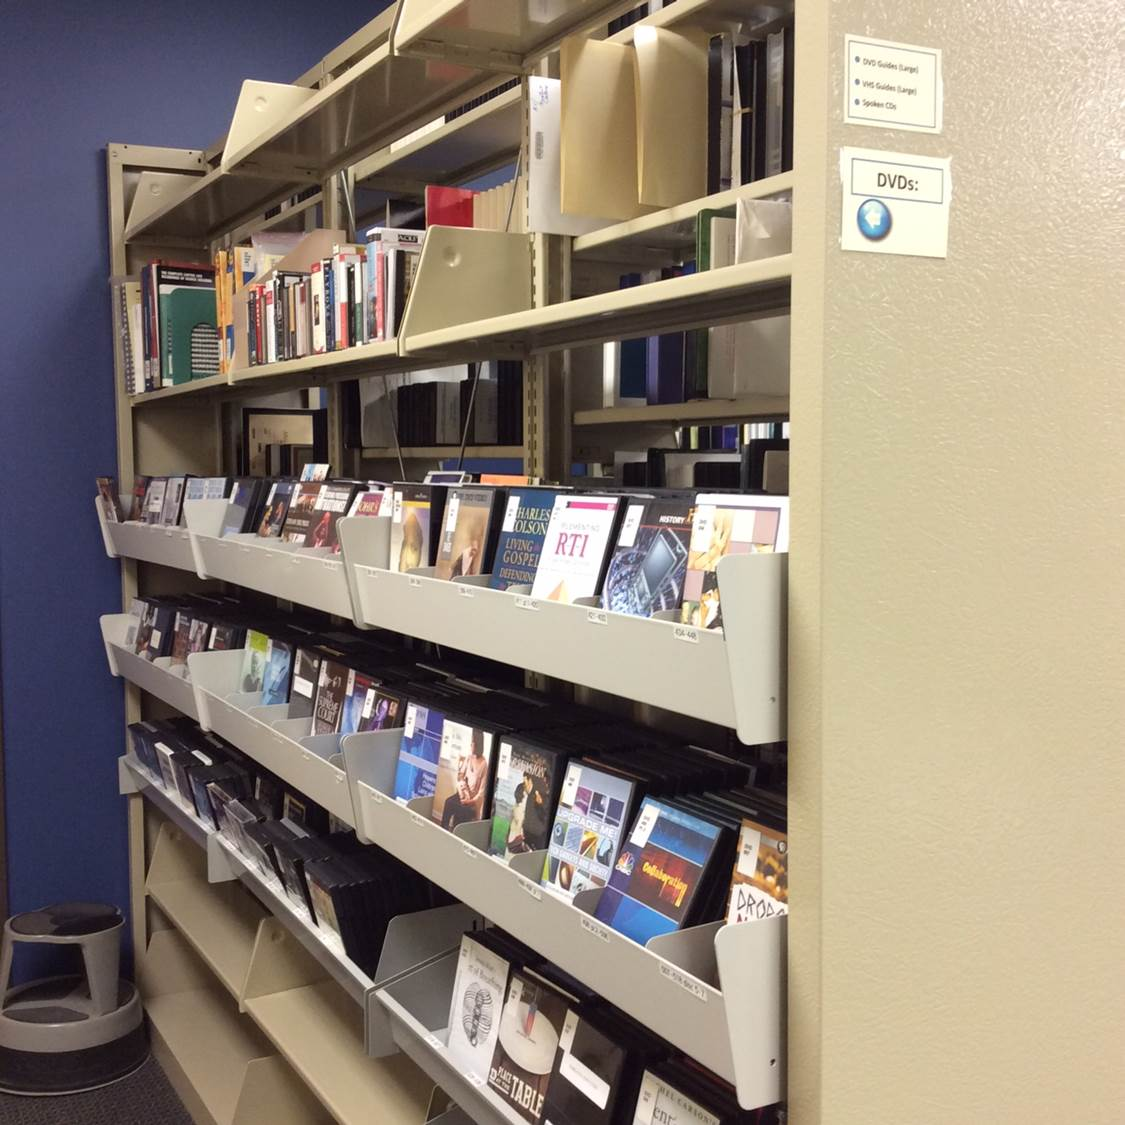 Photo of DVDs that can be checked out to use at AV Stations